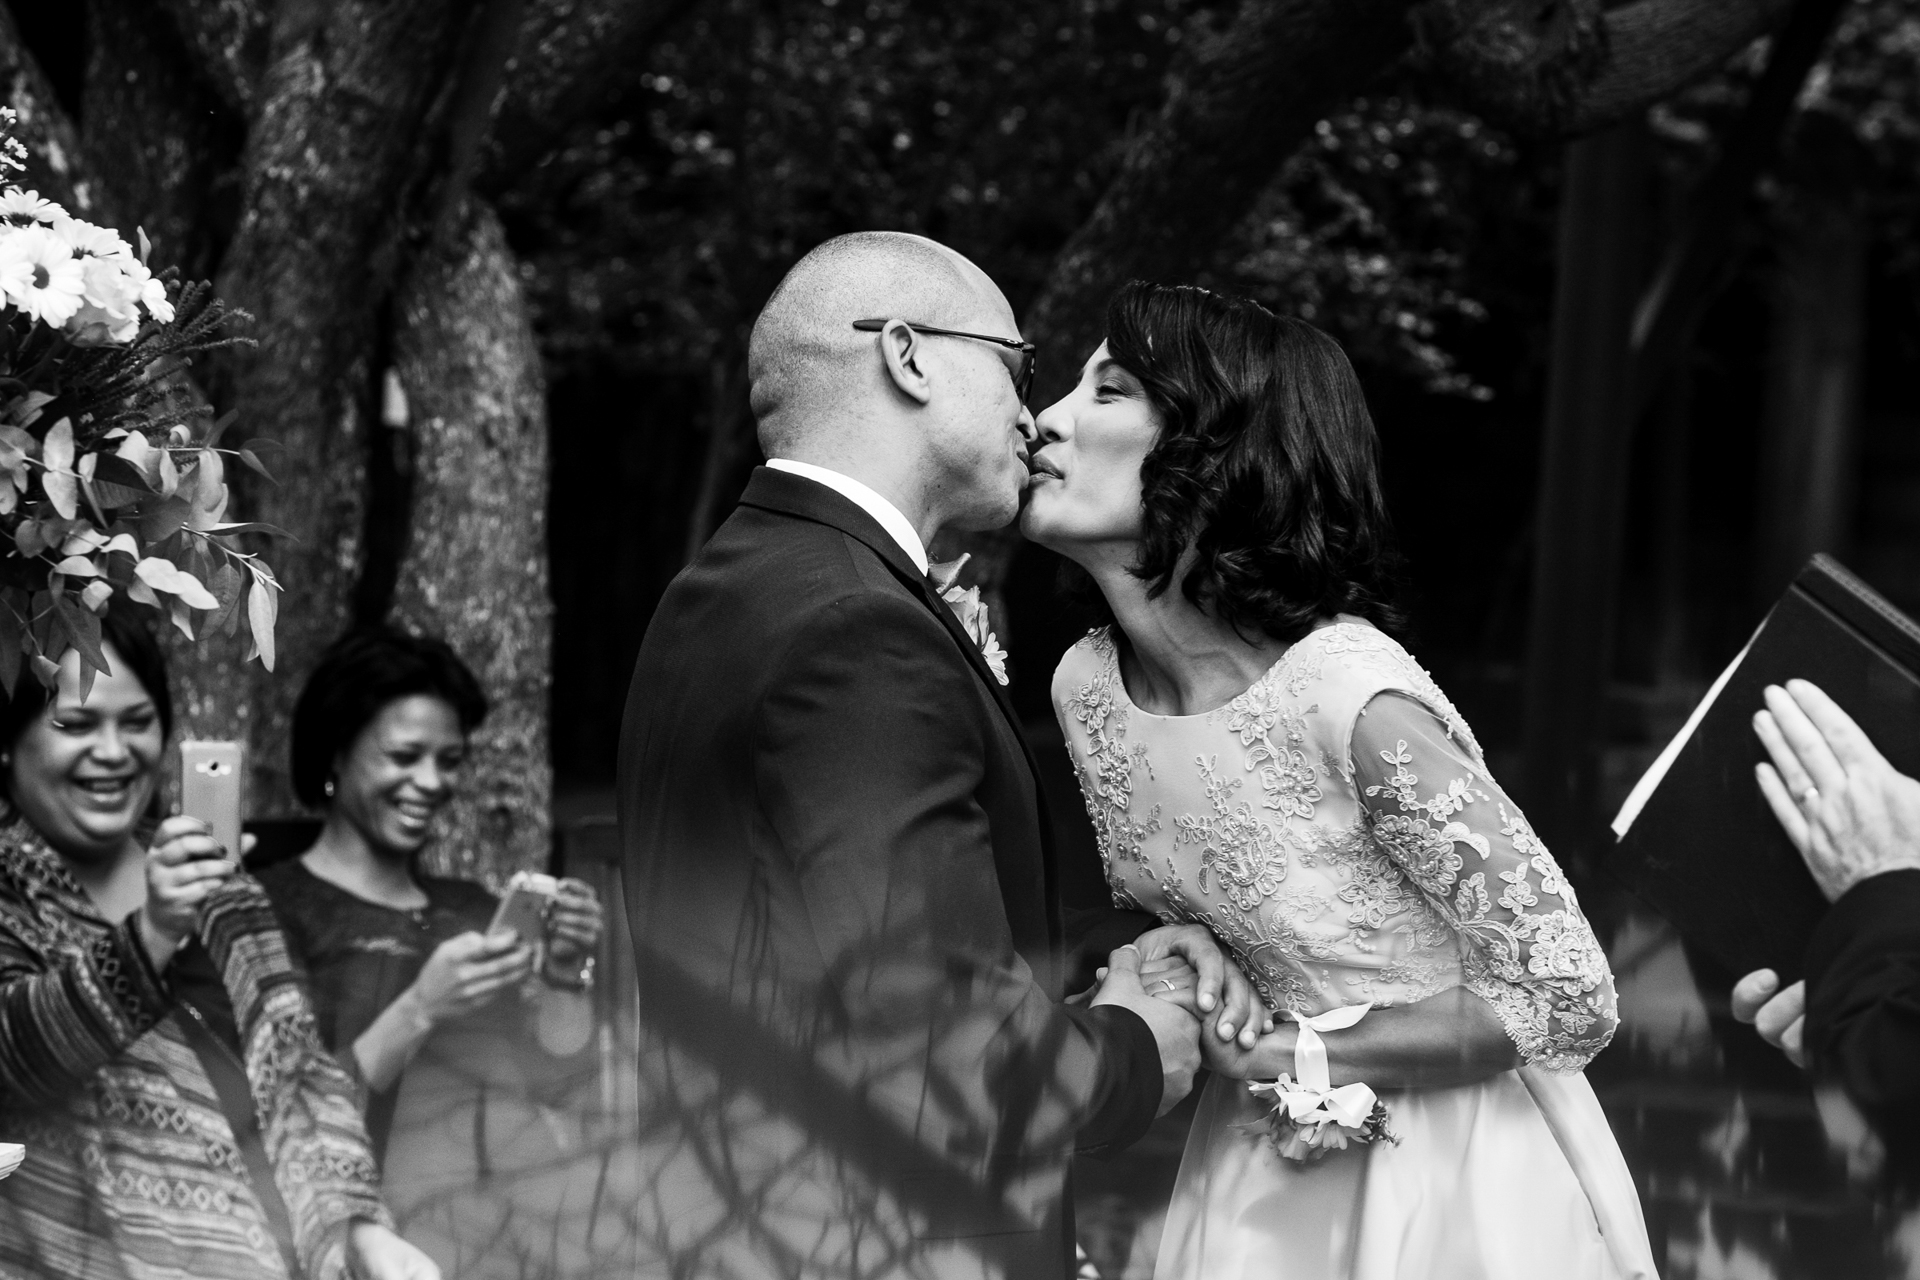 Wilderness, Garden Route, South Africa Elopement Image - Finally, the first kiss as husband and wife! I love the guests' reaction and the little peck the couple creates.